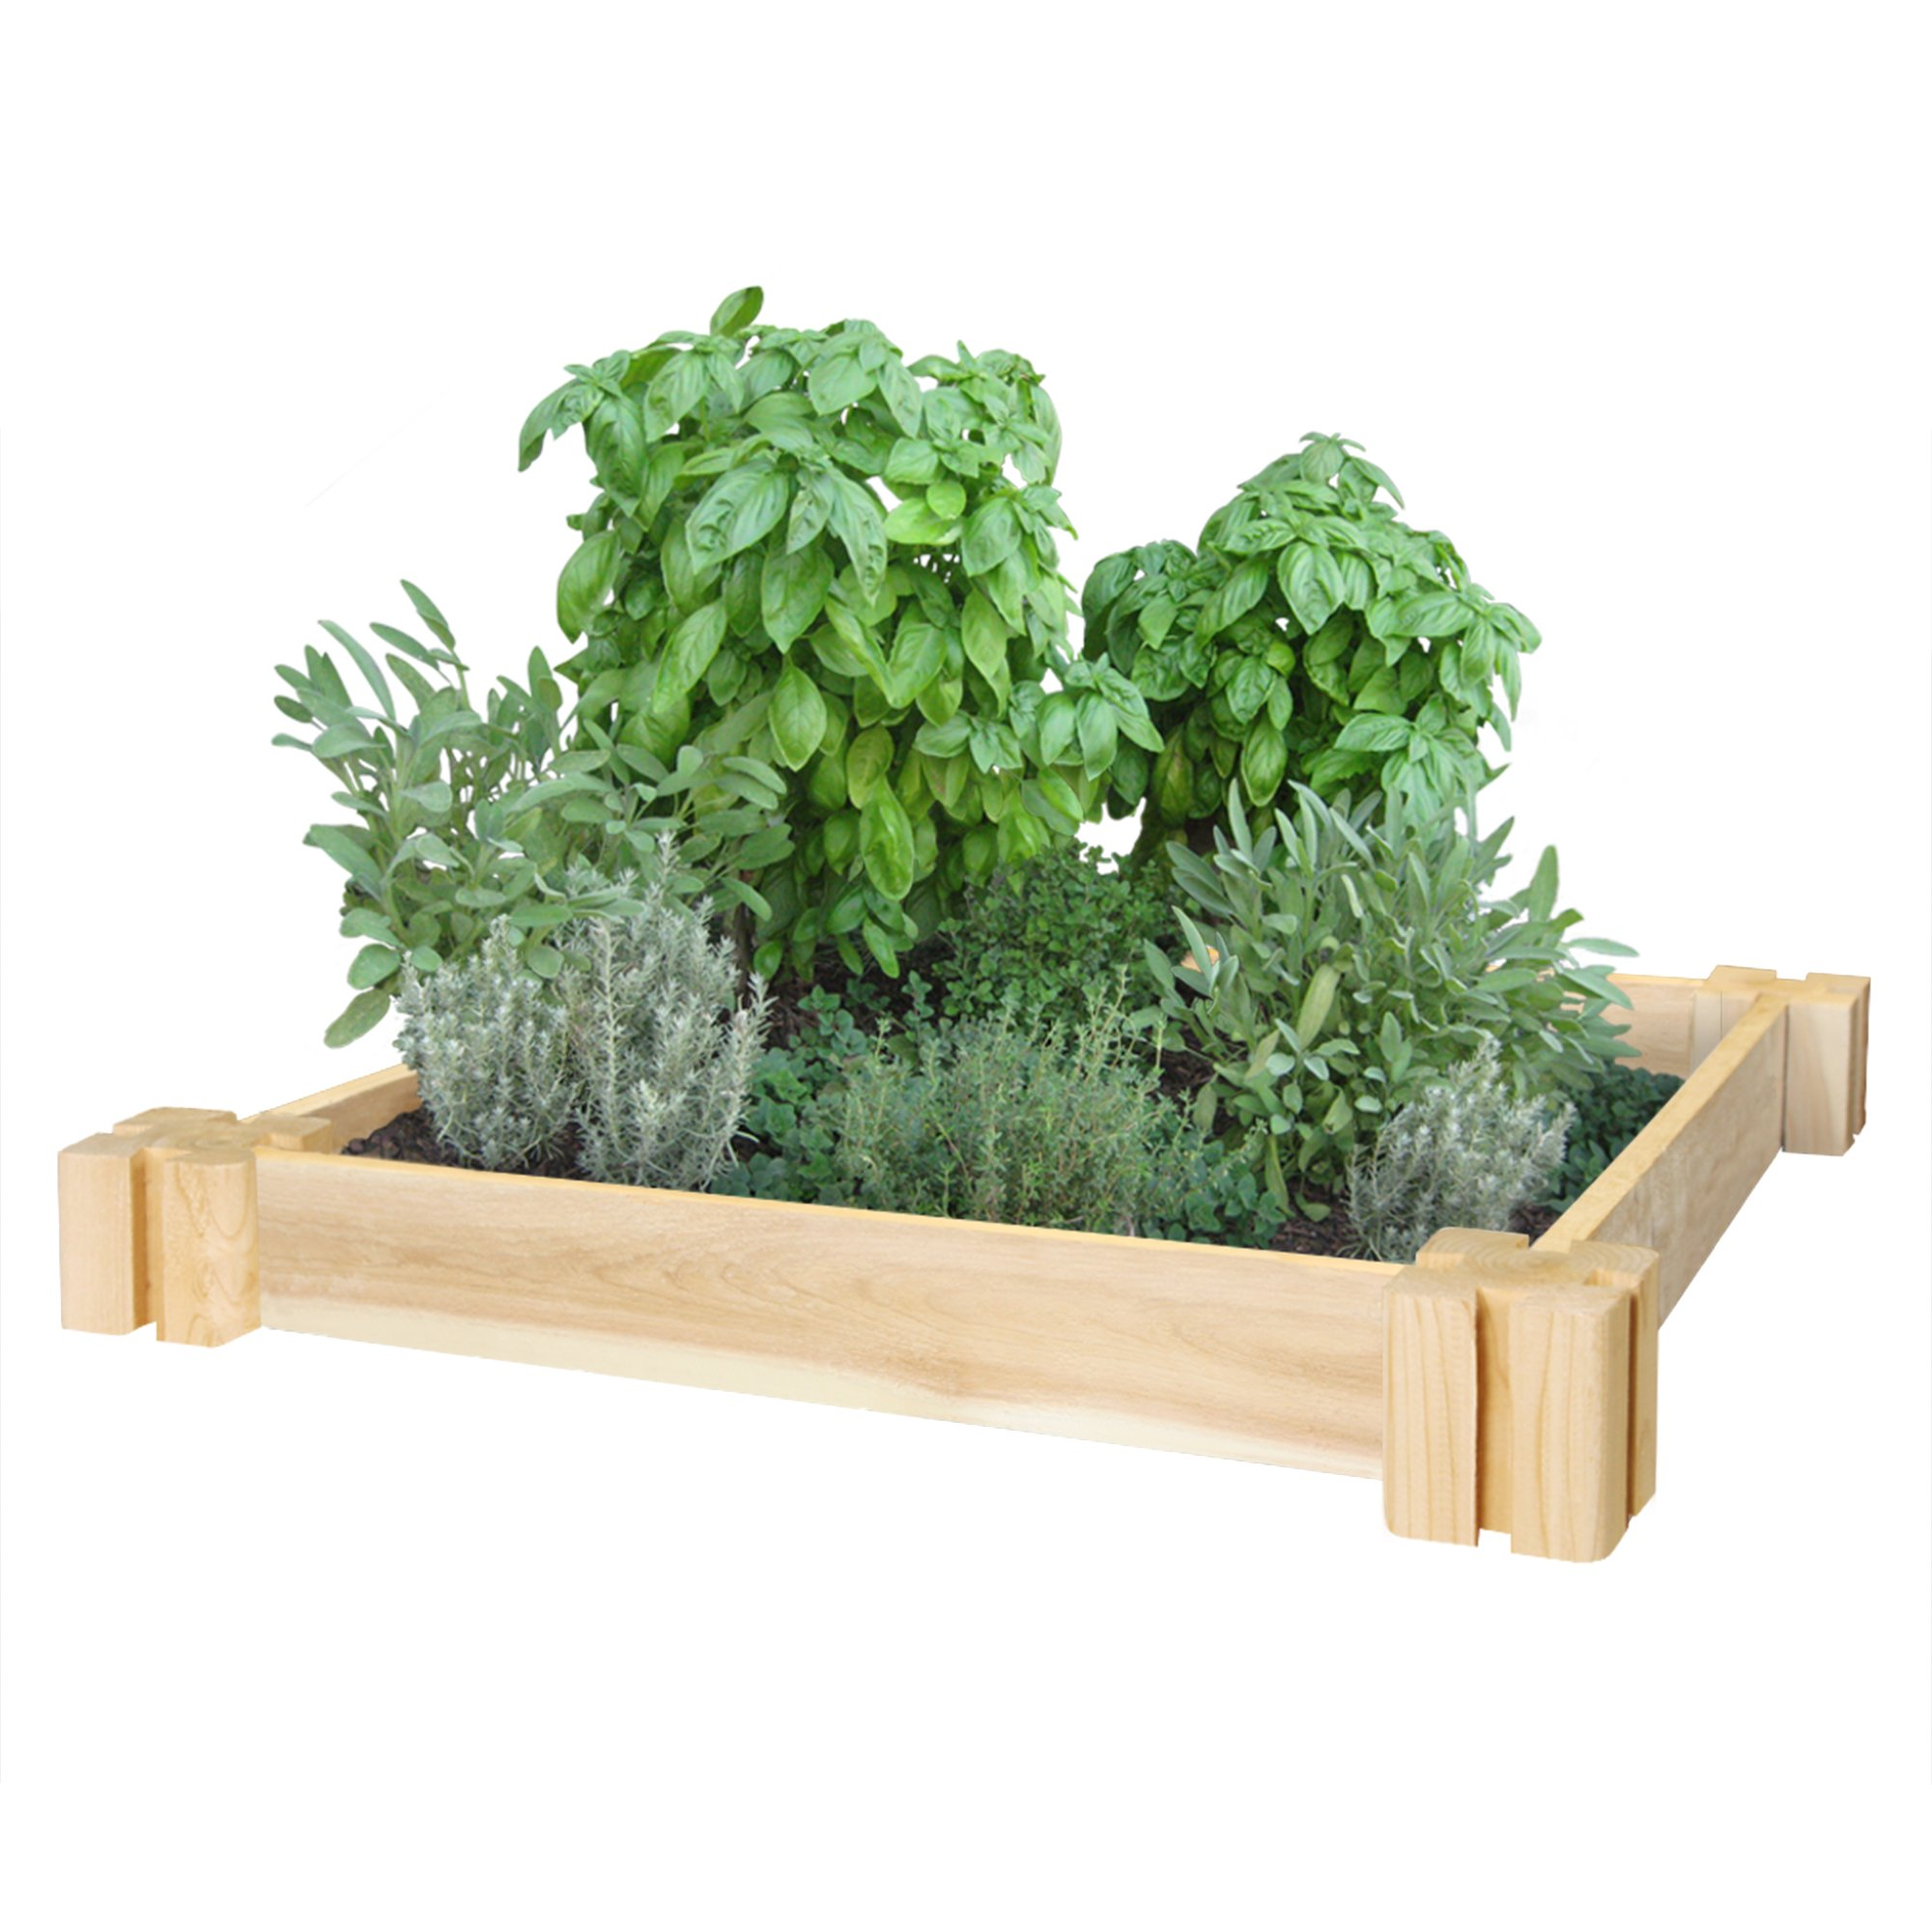 Greenes Fence RC2GH2 Cedar Herb Garden, 2'. x 2'. x 3.5 in, Natural